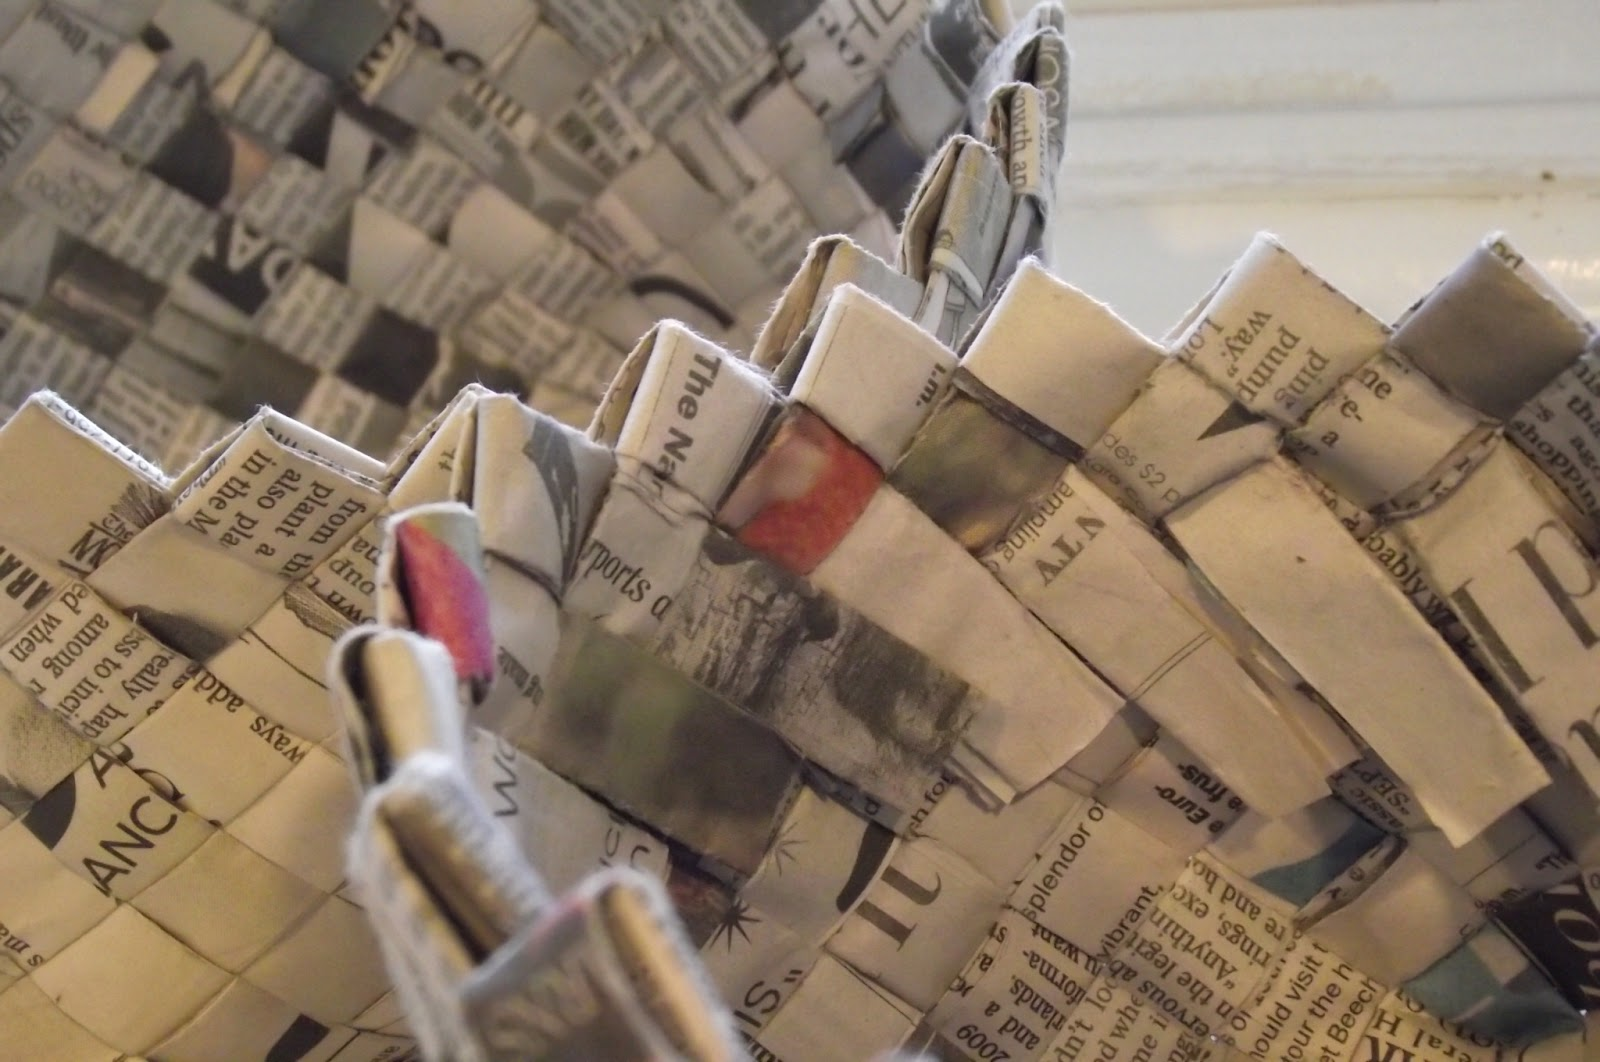 Basket Weaving Using Newspaper : Make it and use making woven newspaper baskets